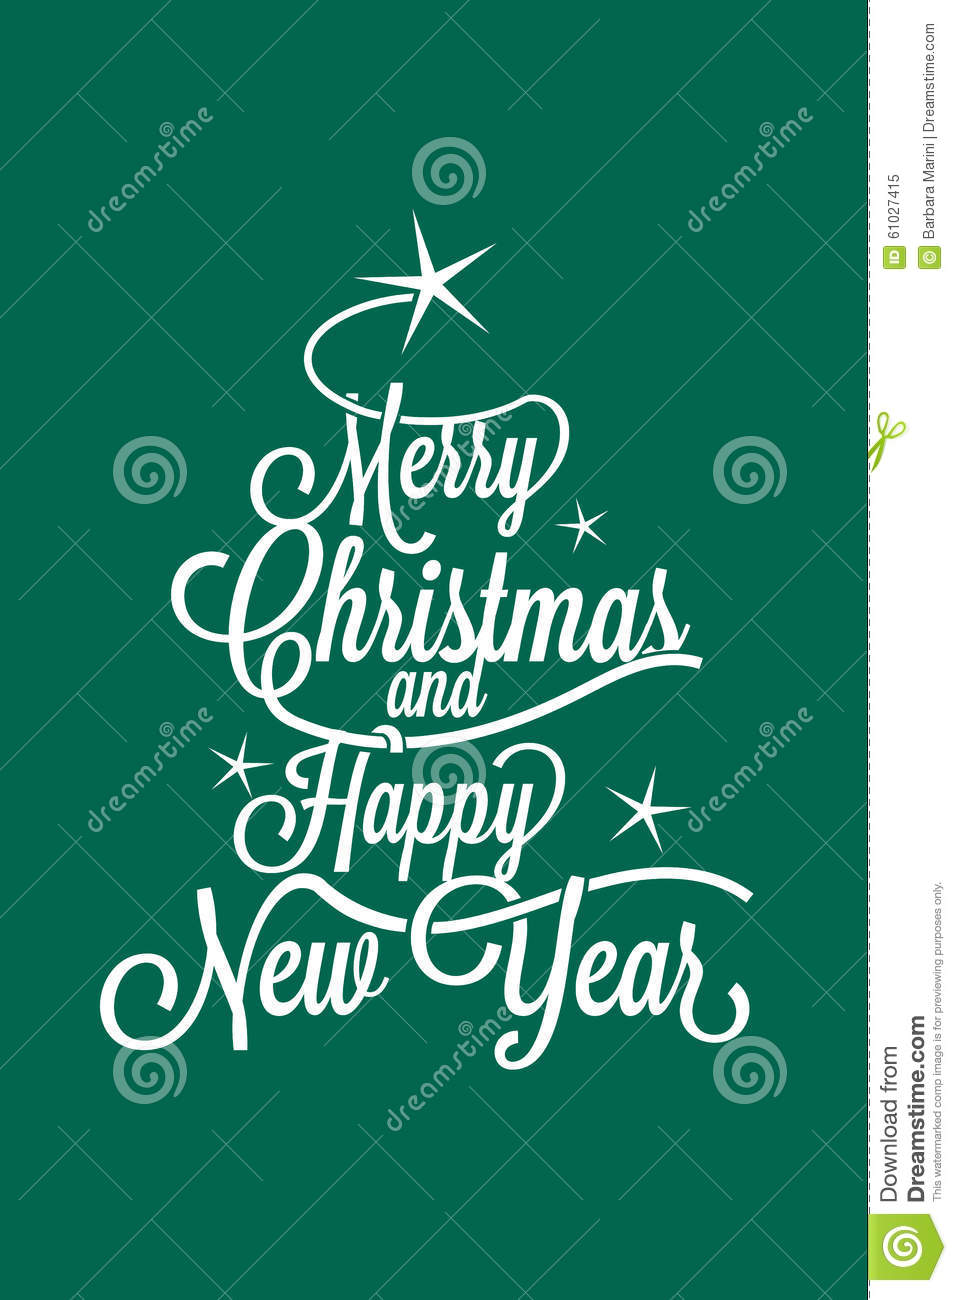 Merry Christmas And Happy New Year Greetings Postcard Stock Vector ...